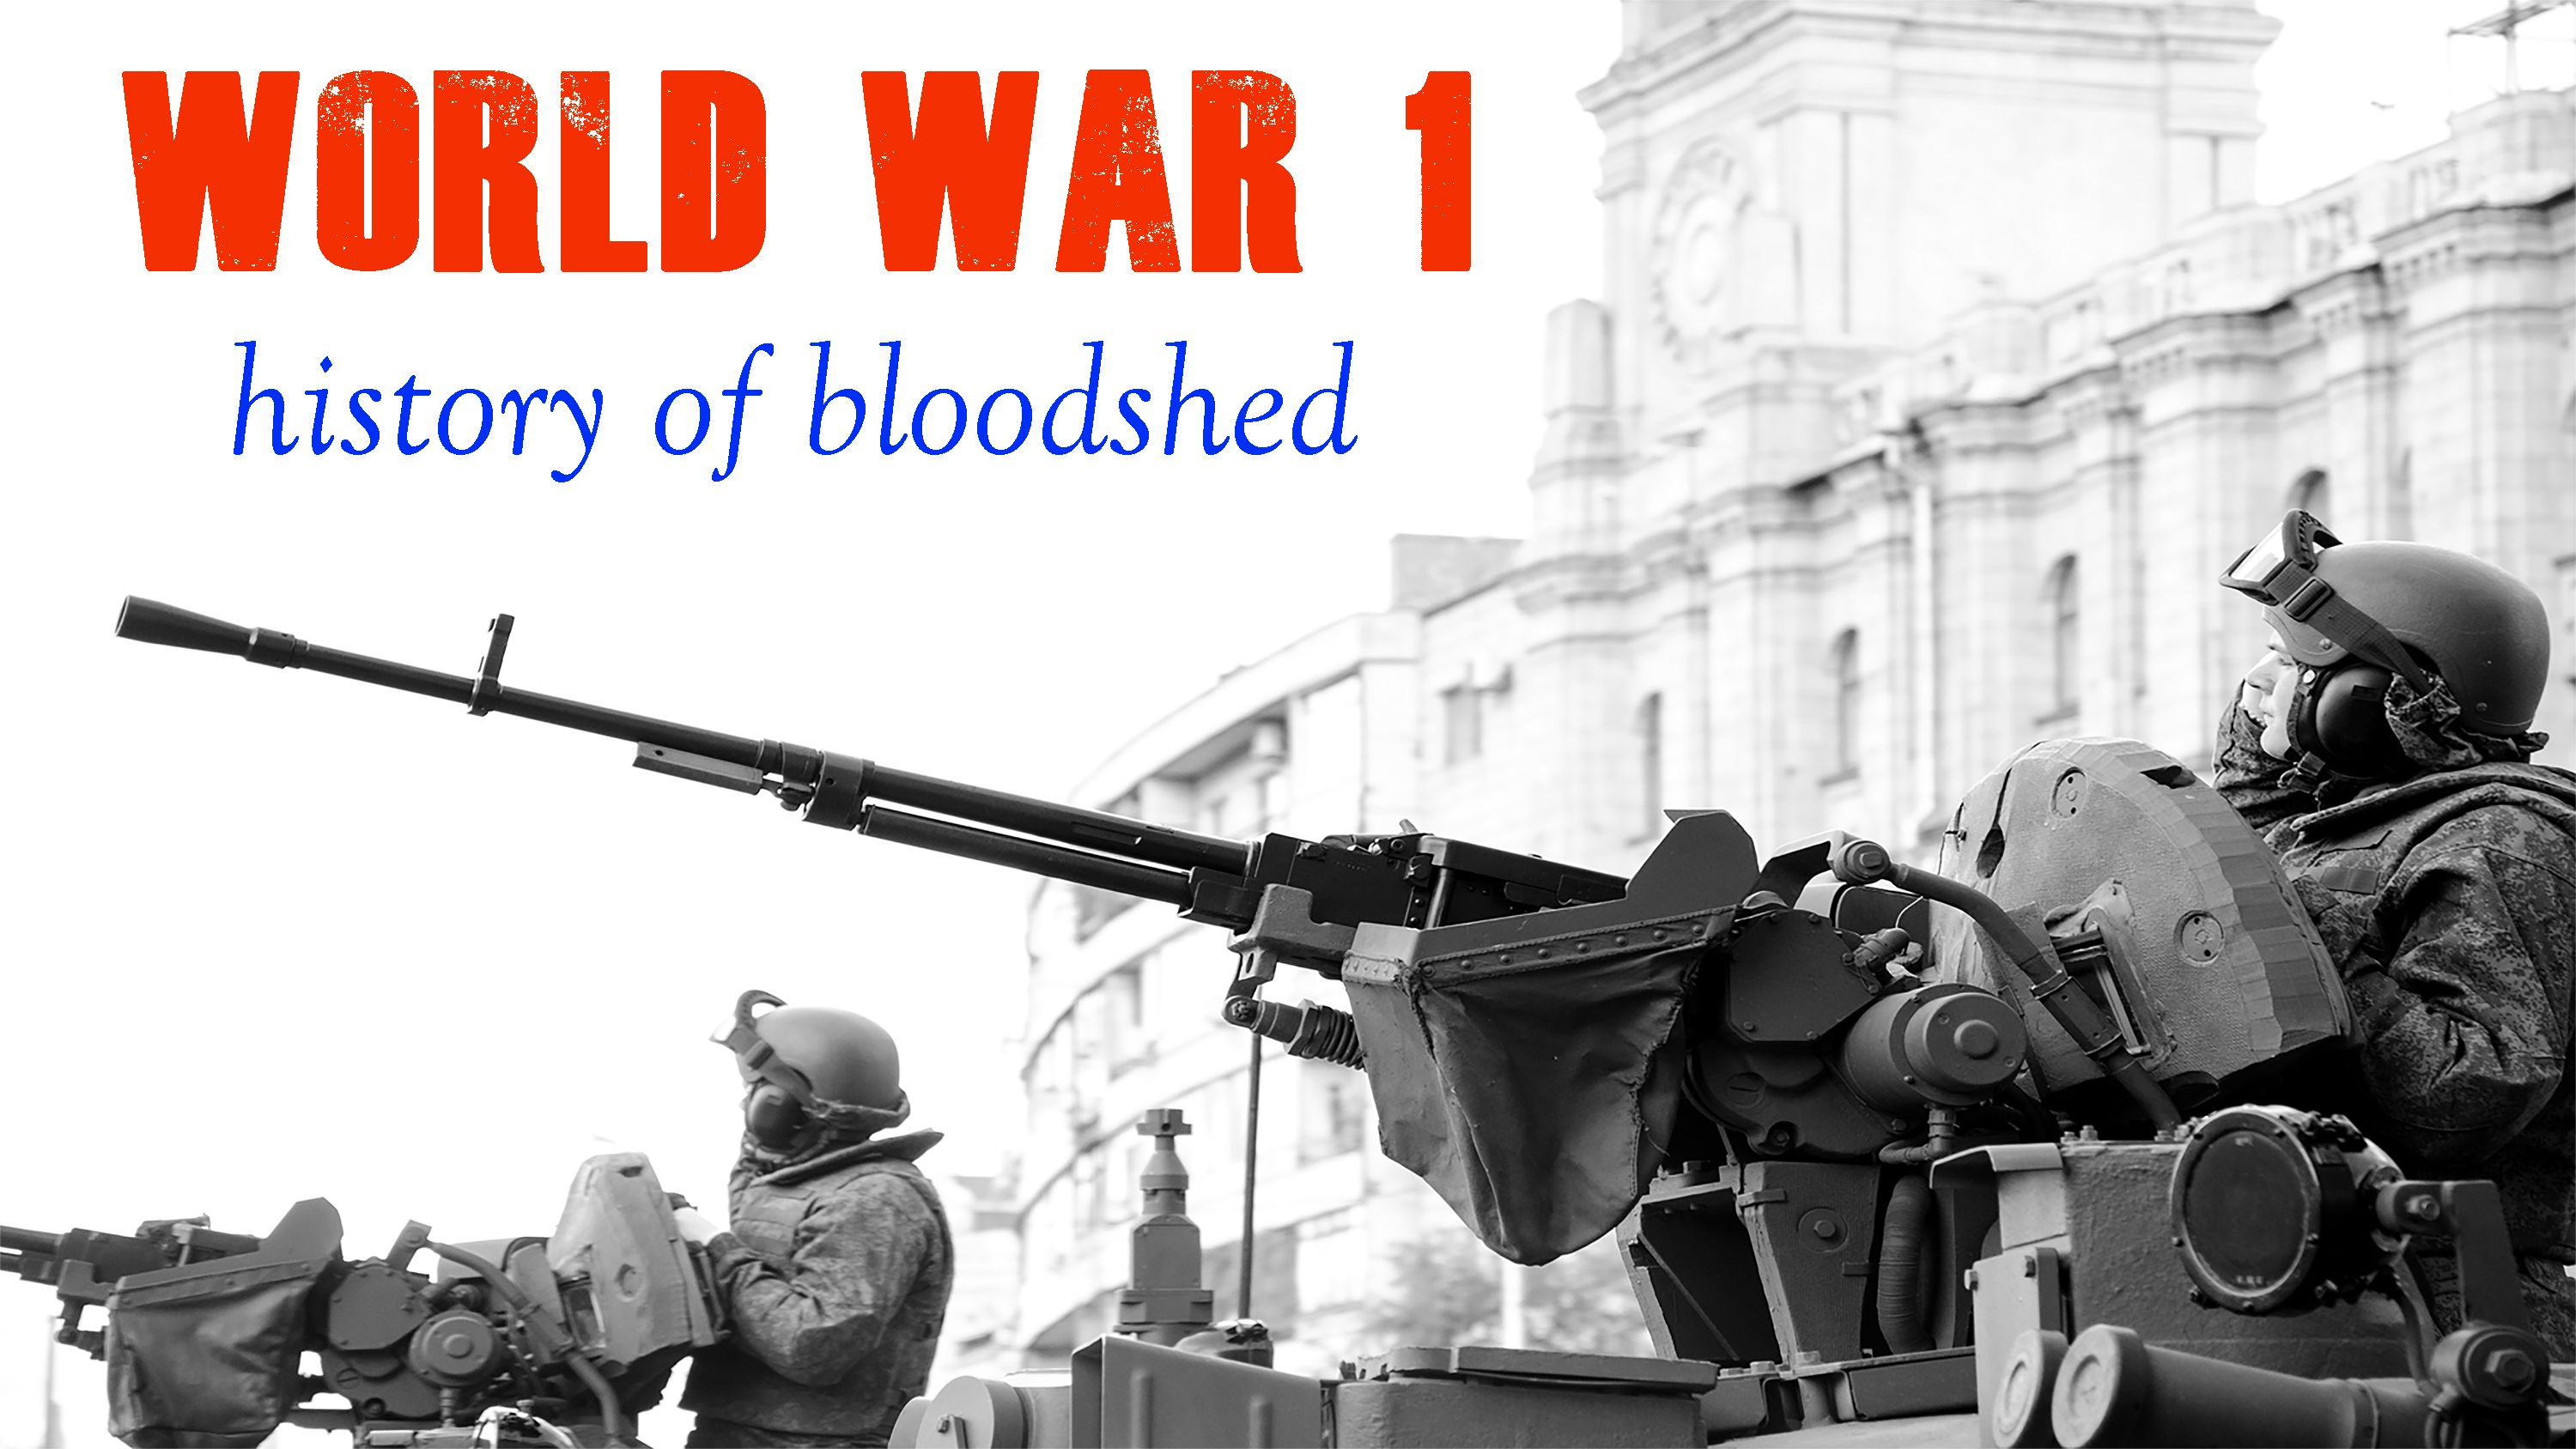 world war 1, world war 1 summary, world war 1 essay, world war 1 facts, world war 1 history, world war 1 dates, world war 1 reason, Causes of First World War, Course of the War, Impact of World war 1, Assassination of Archduke Franz Ferdinand